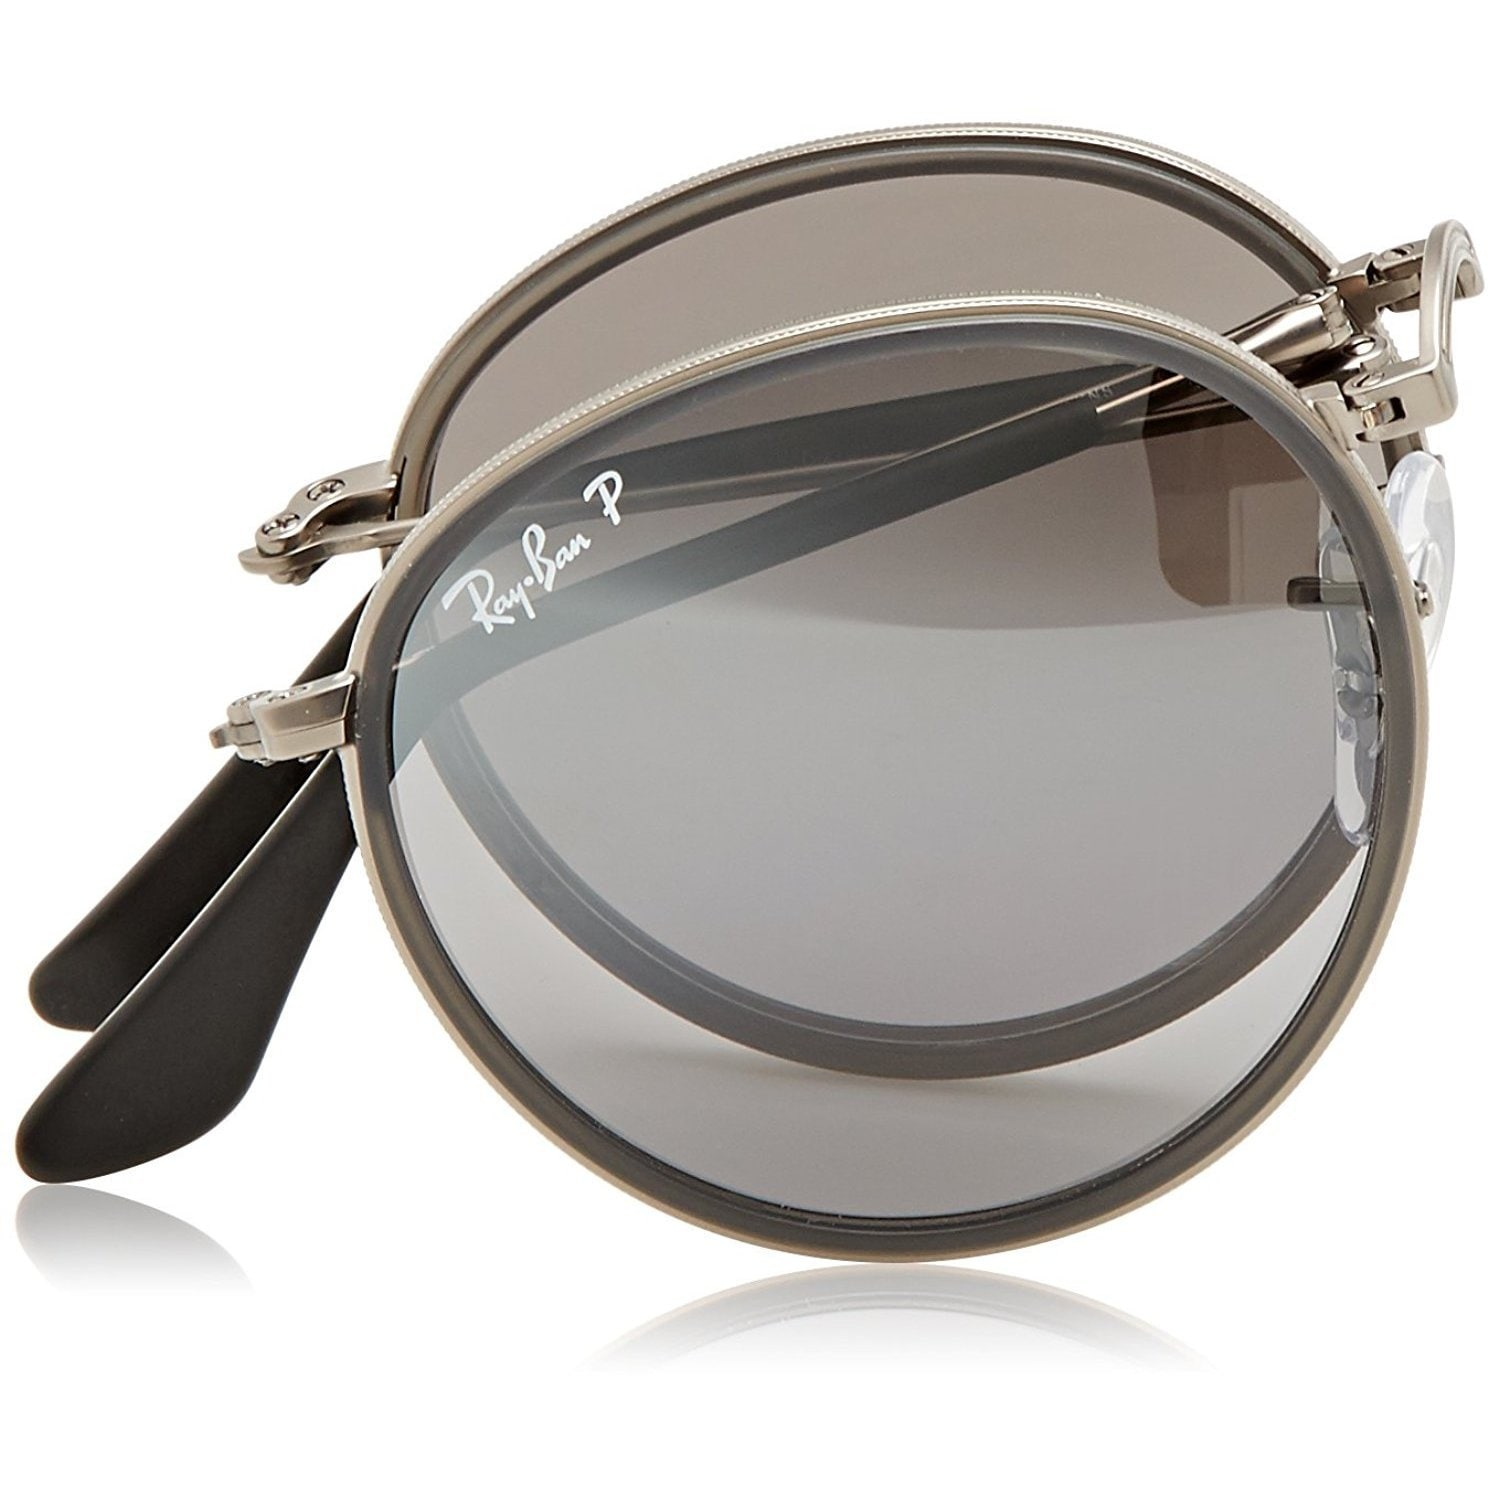 1d7e2ac520 Shop Ray-Ban Round Folding RB3517 Unisex Gunmetal Frame Polarized Silver  Gradient 48mm Lens Sunglasses - Free Shipping Today - Overstock - 15370759